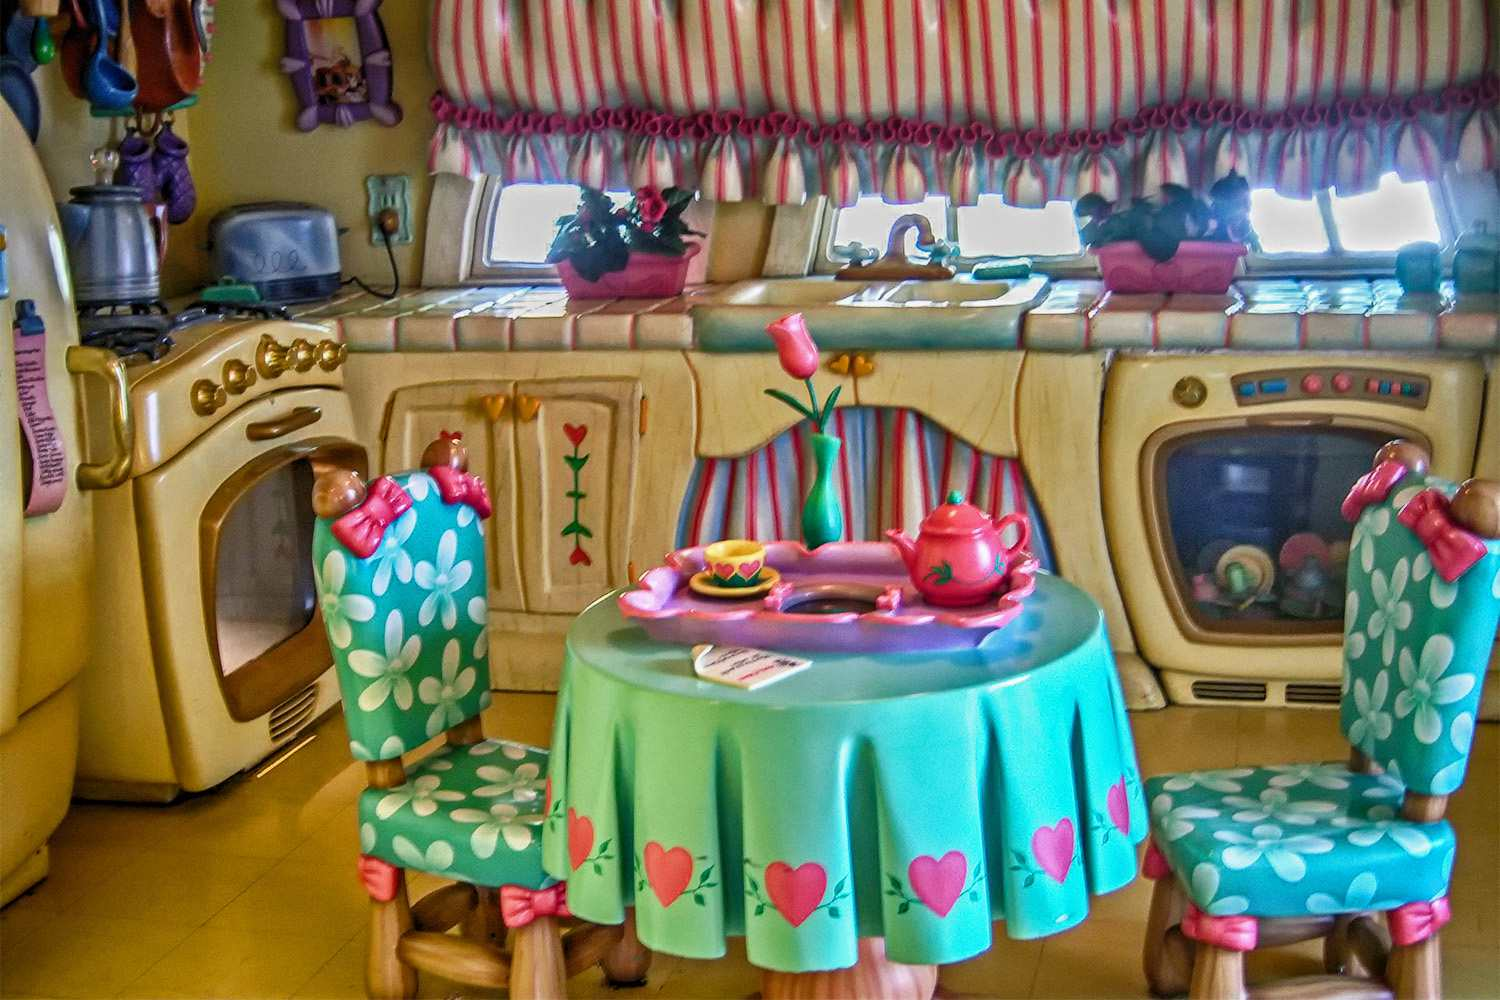 Inside Minnie's House in Toontown